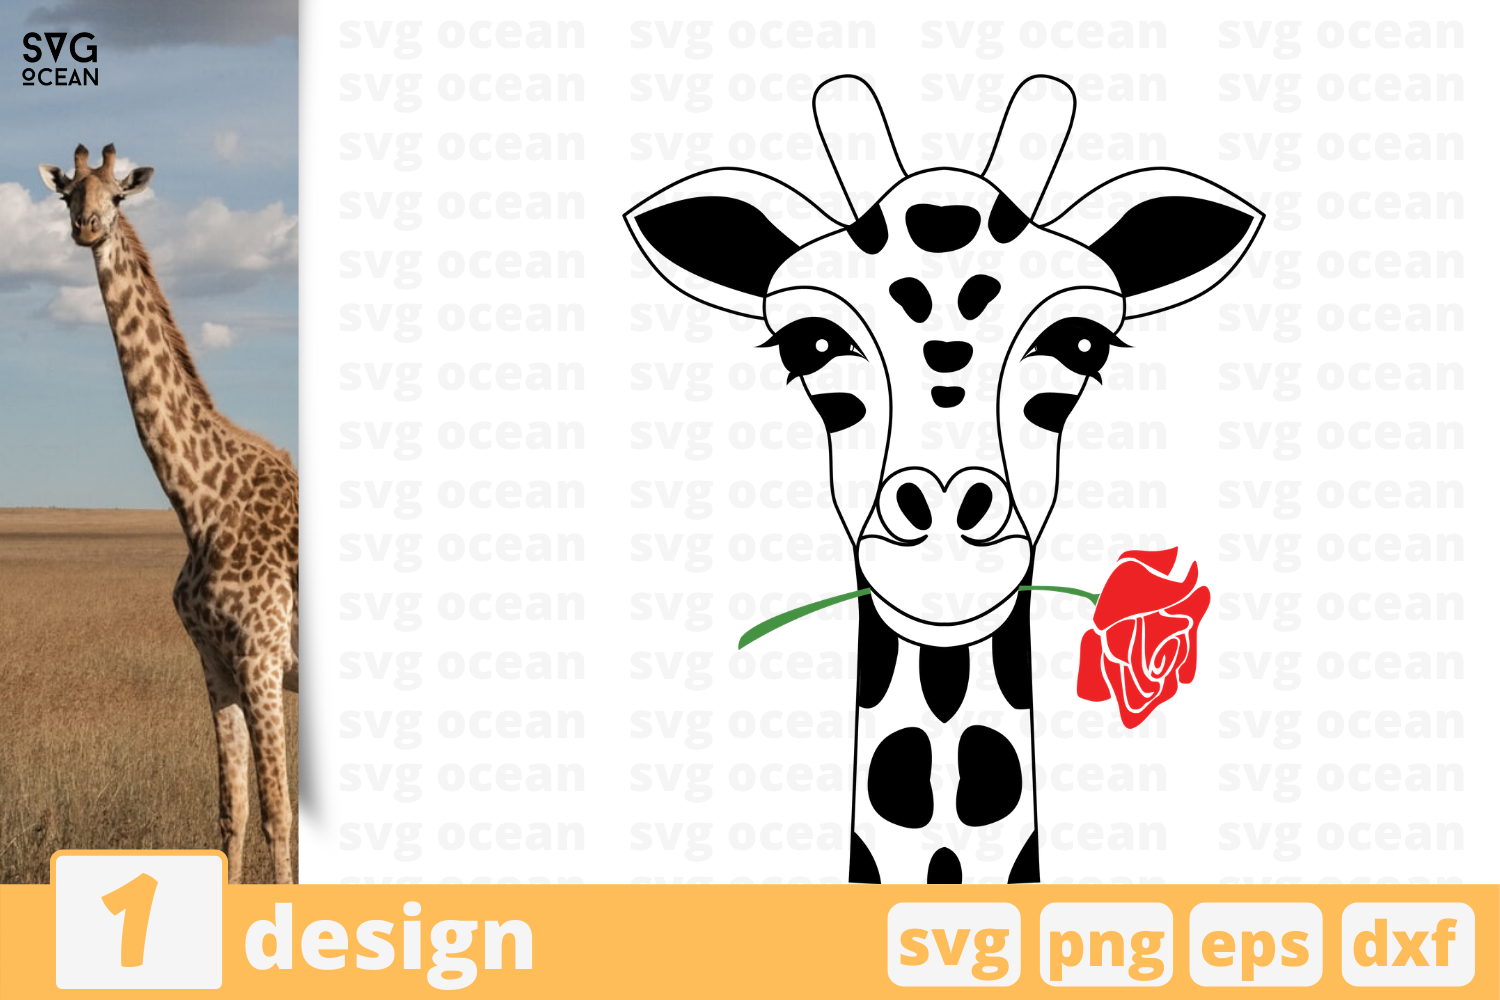 Download Free Giraffe Graphic By Svgocean Creative Fabrica for Cricut Explore, Silhouette and other cutting machines.